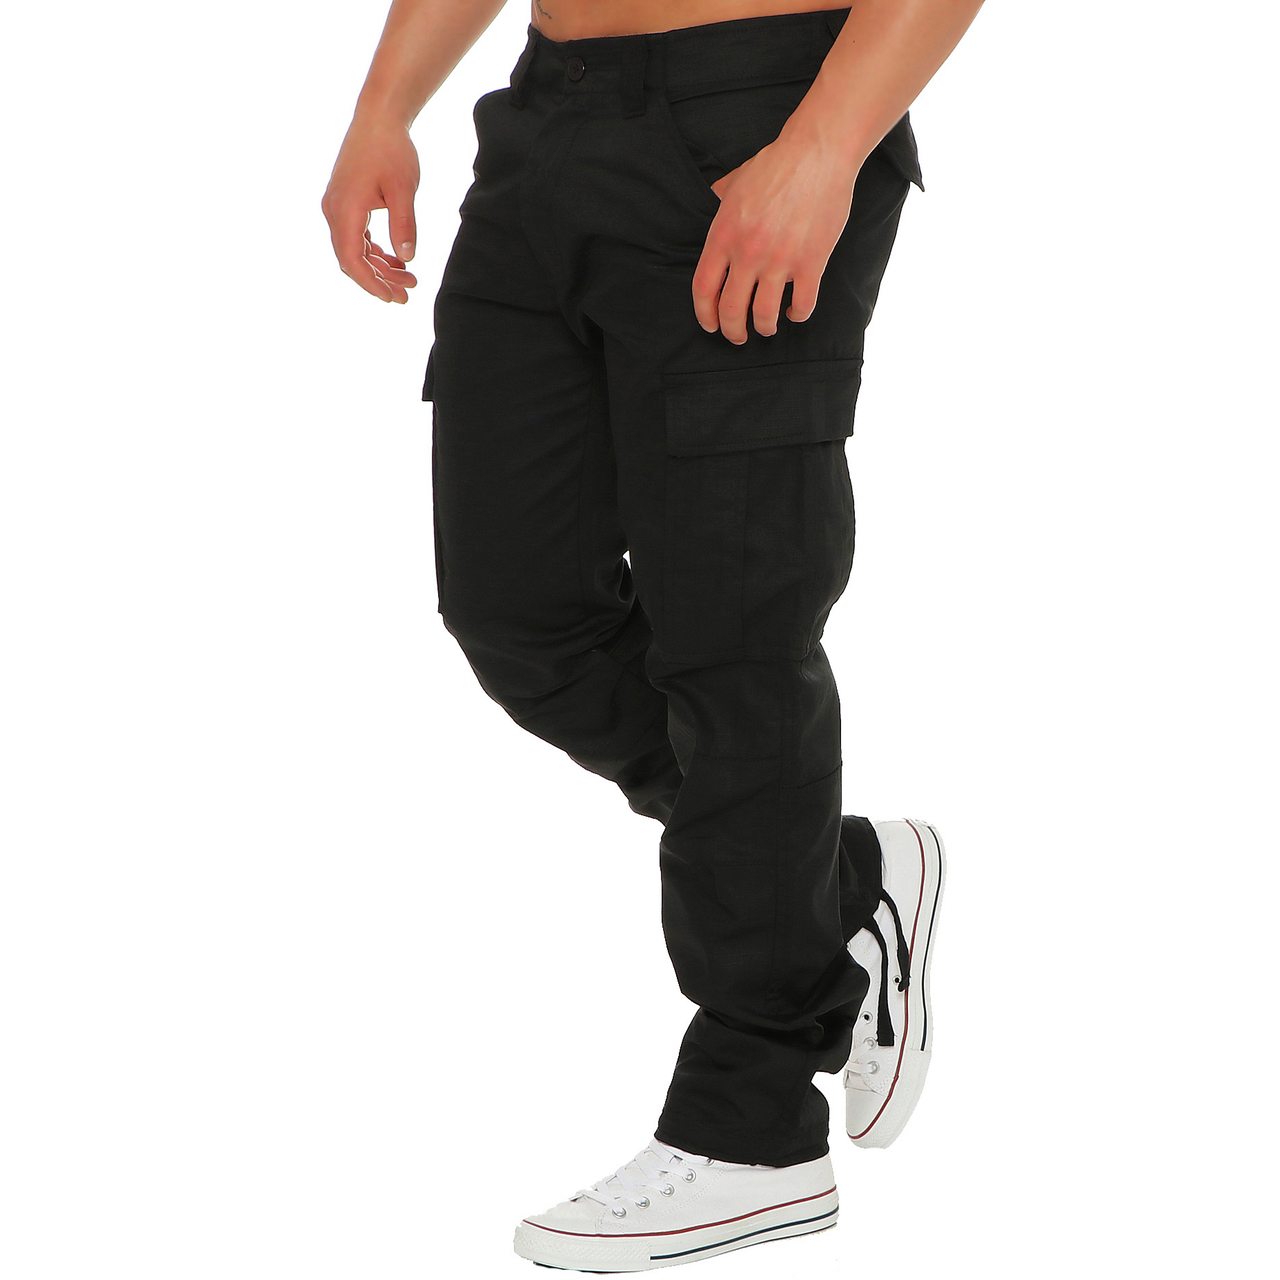 Finchman-Herren-Cargo-F1001-Hose-Lang-Trousers-Pant-Freizeithose-Tapererd-Fit